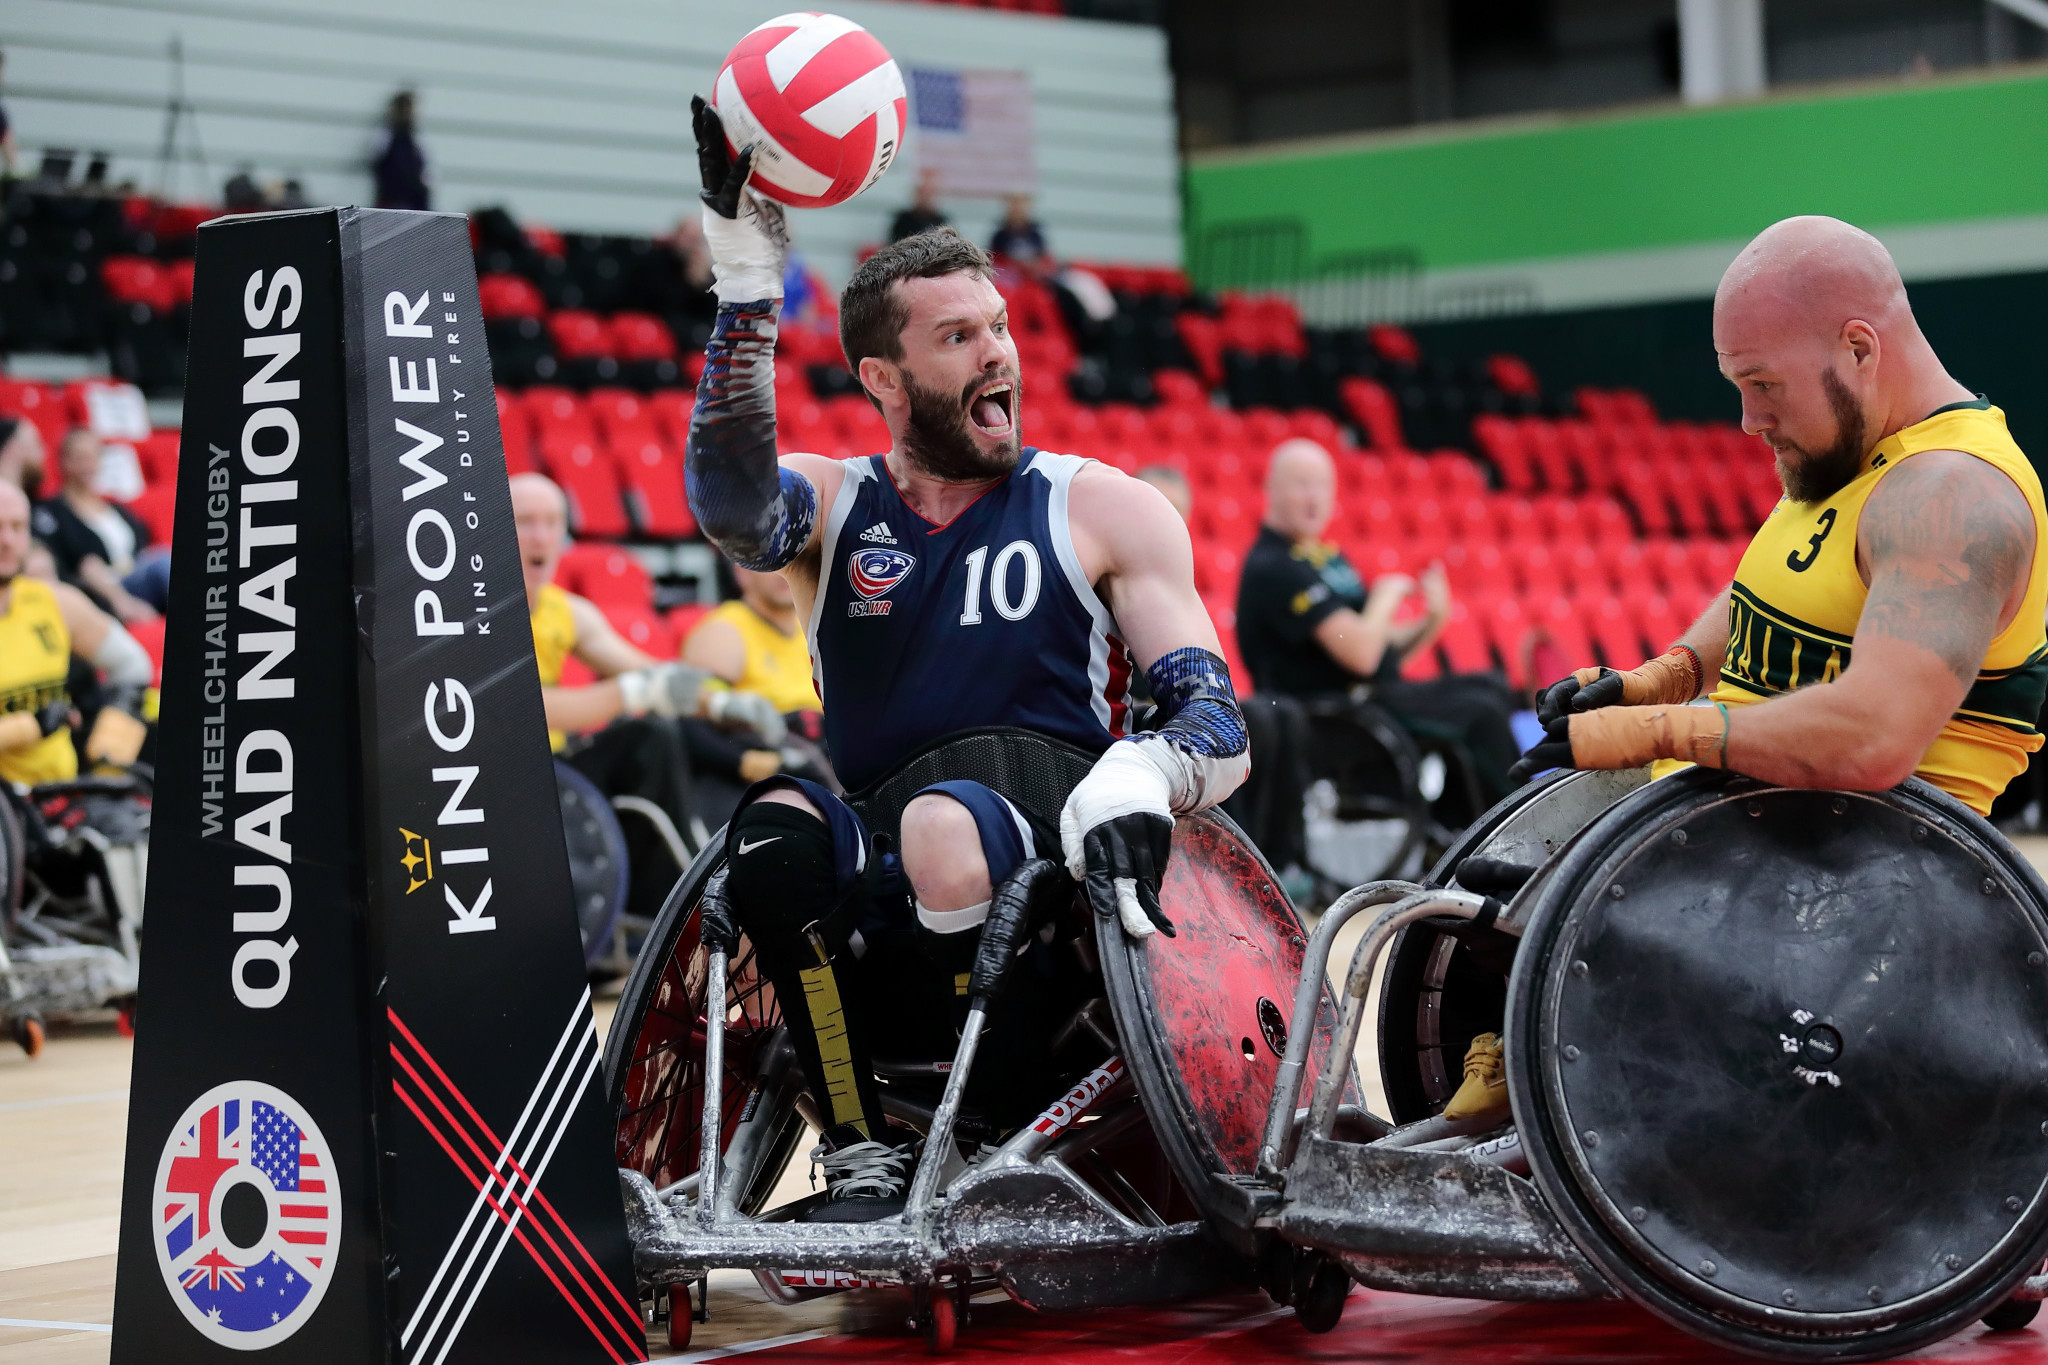 Unbeaten United States into Wheelchair Rugby Quad Nations final